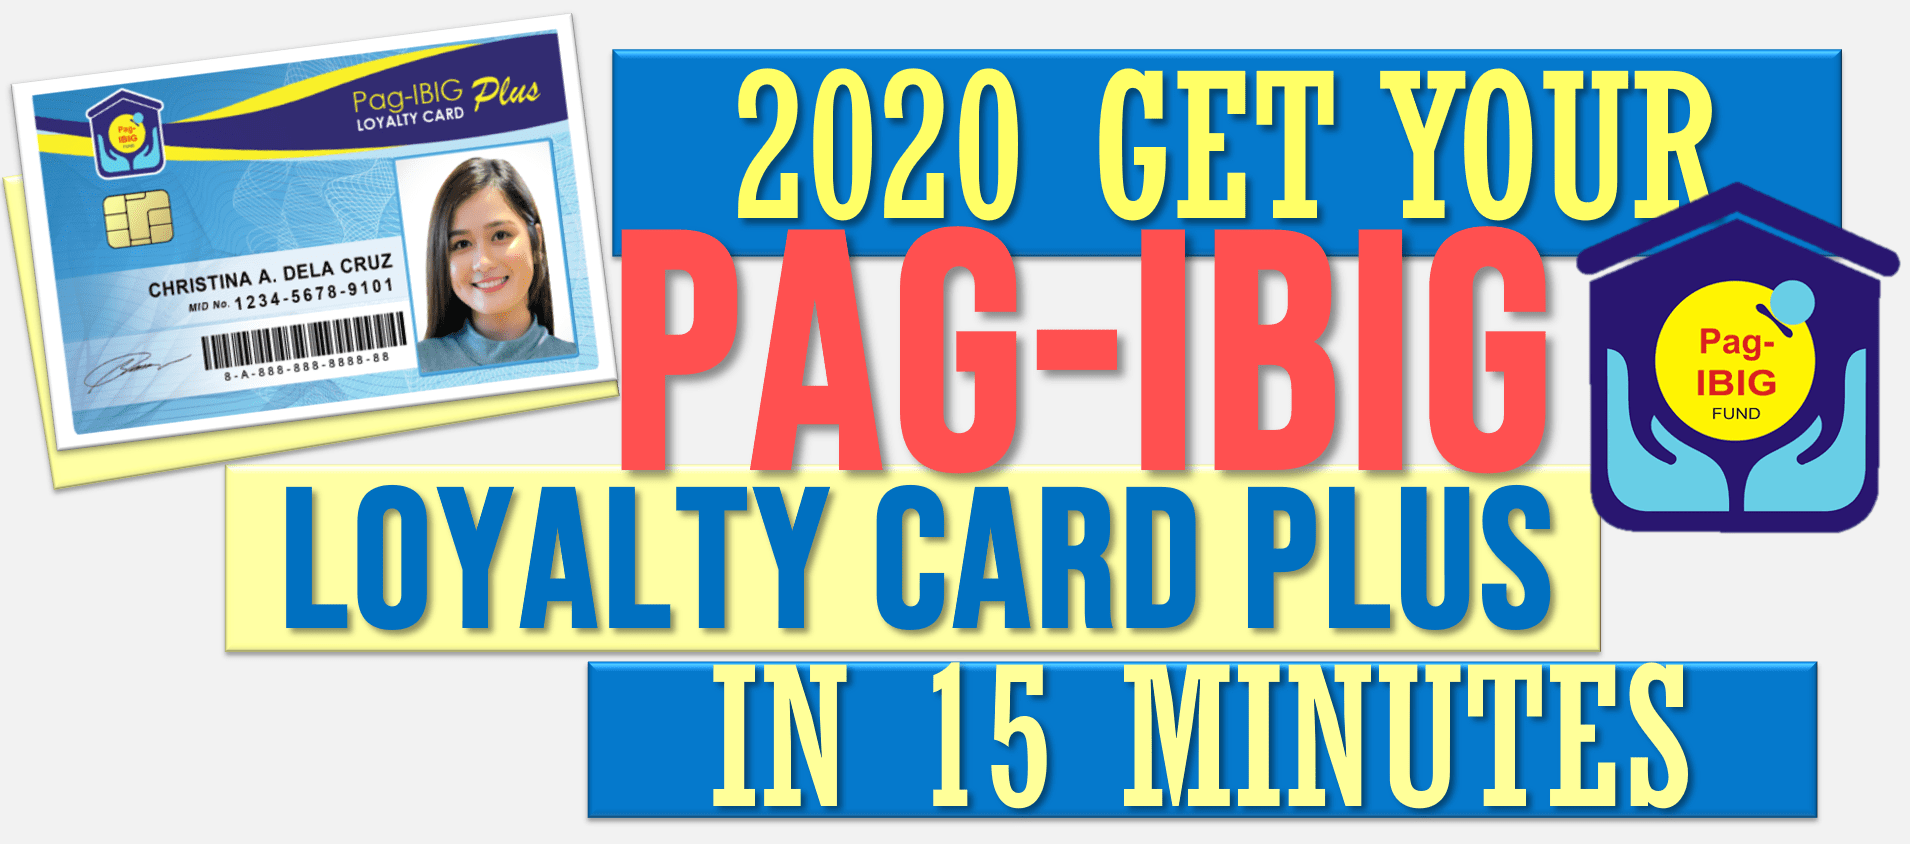 2020 Tips – How to get Pag-IBIG Loyalty Card Plus in 15 minutes